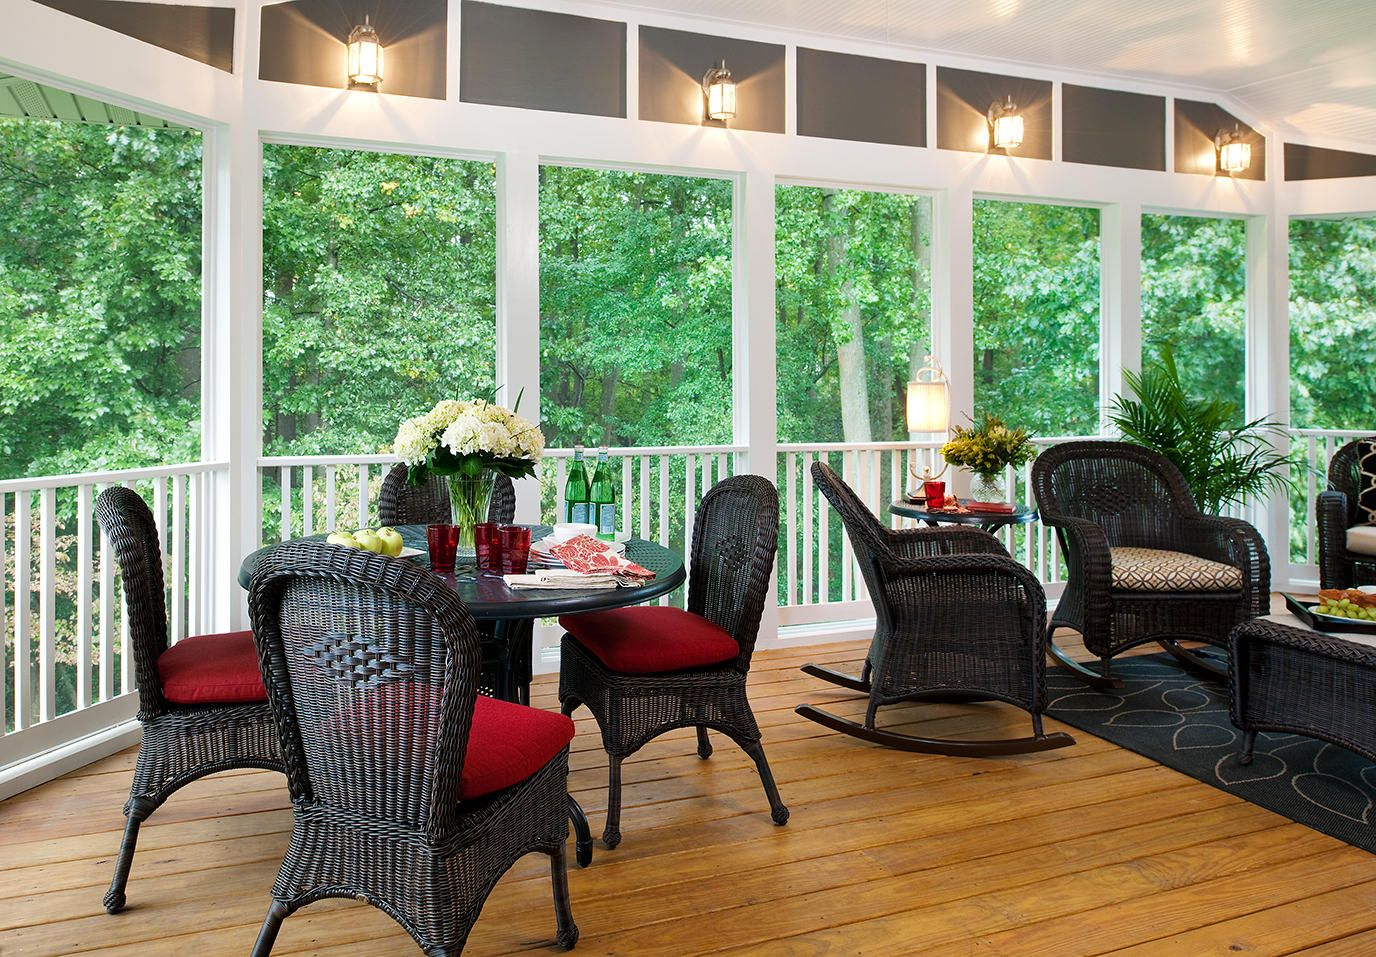 17 best images about elegantly furnished screened in porch on screen porch ideas designs - Screened In Porch Ideas Design